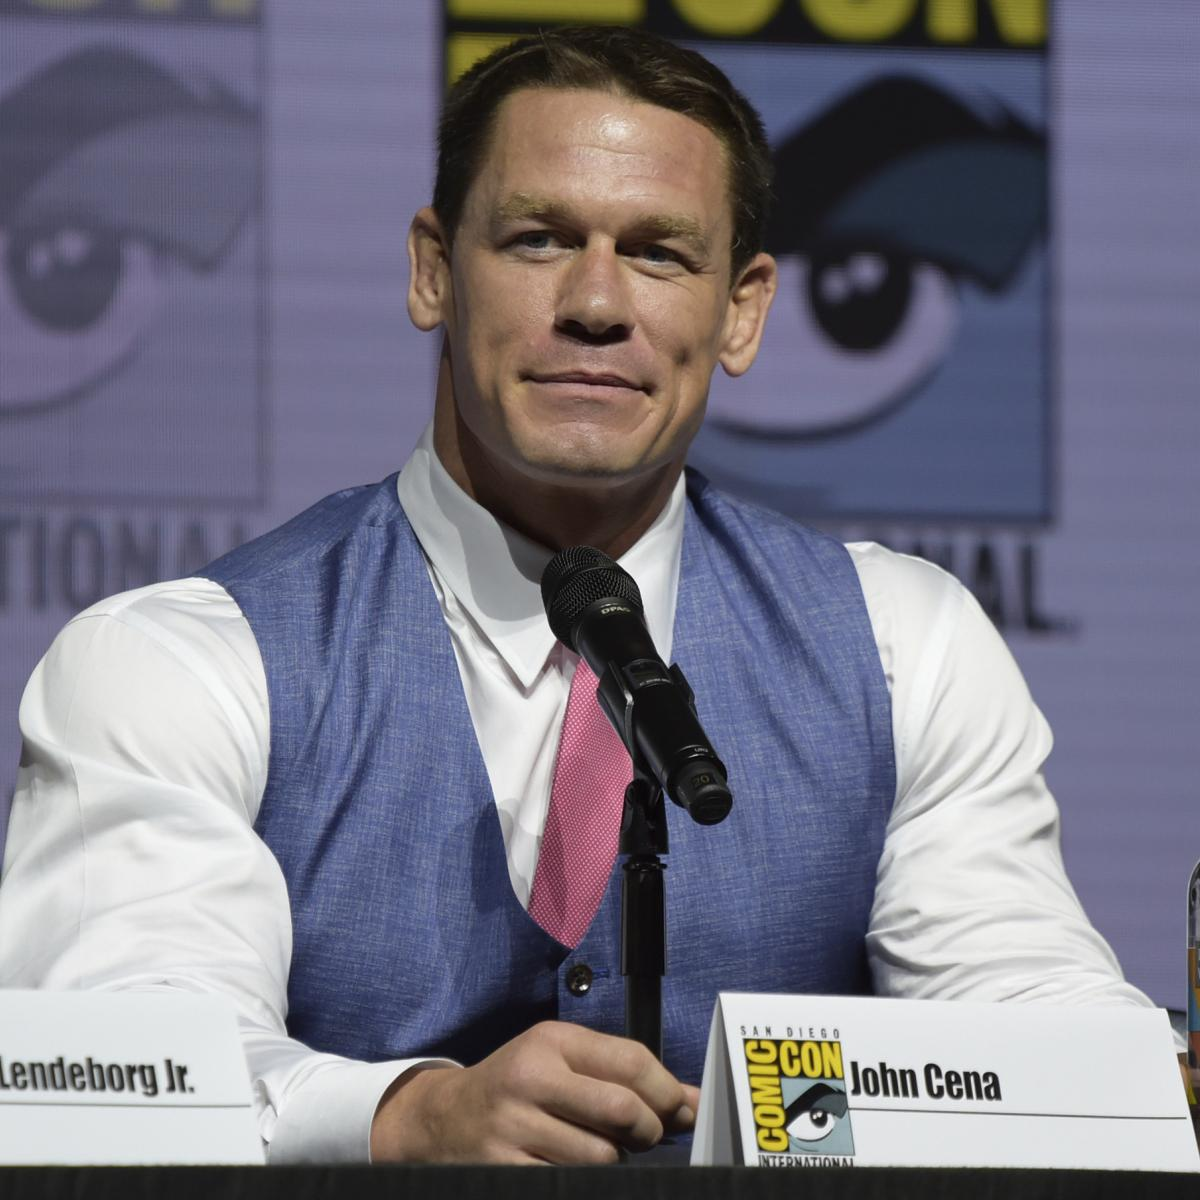 John Cena WWE Super Show-Down Appearance Must Lead To Full